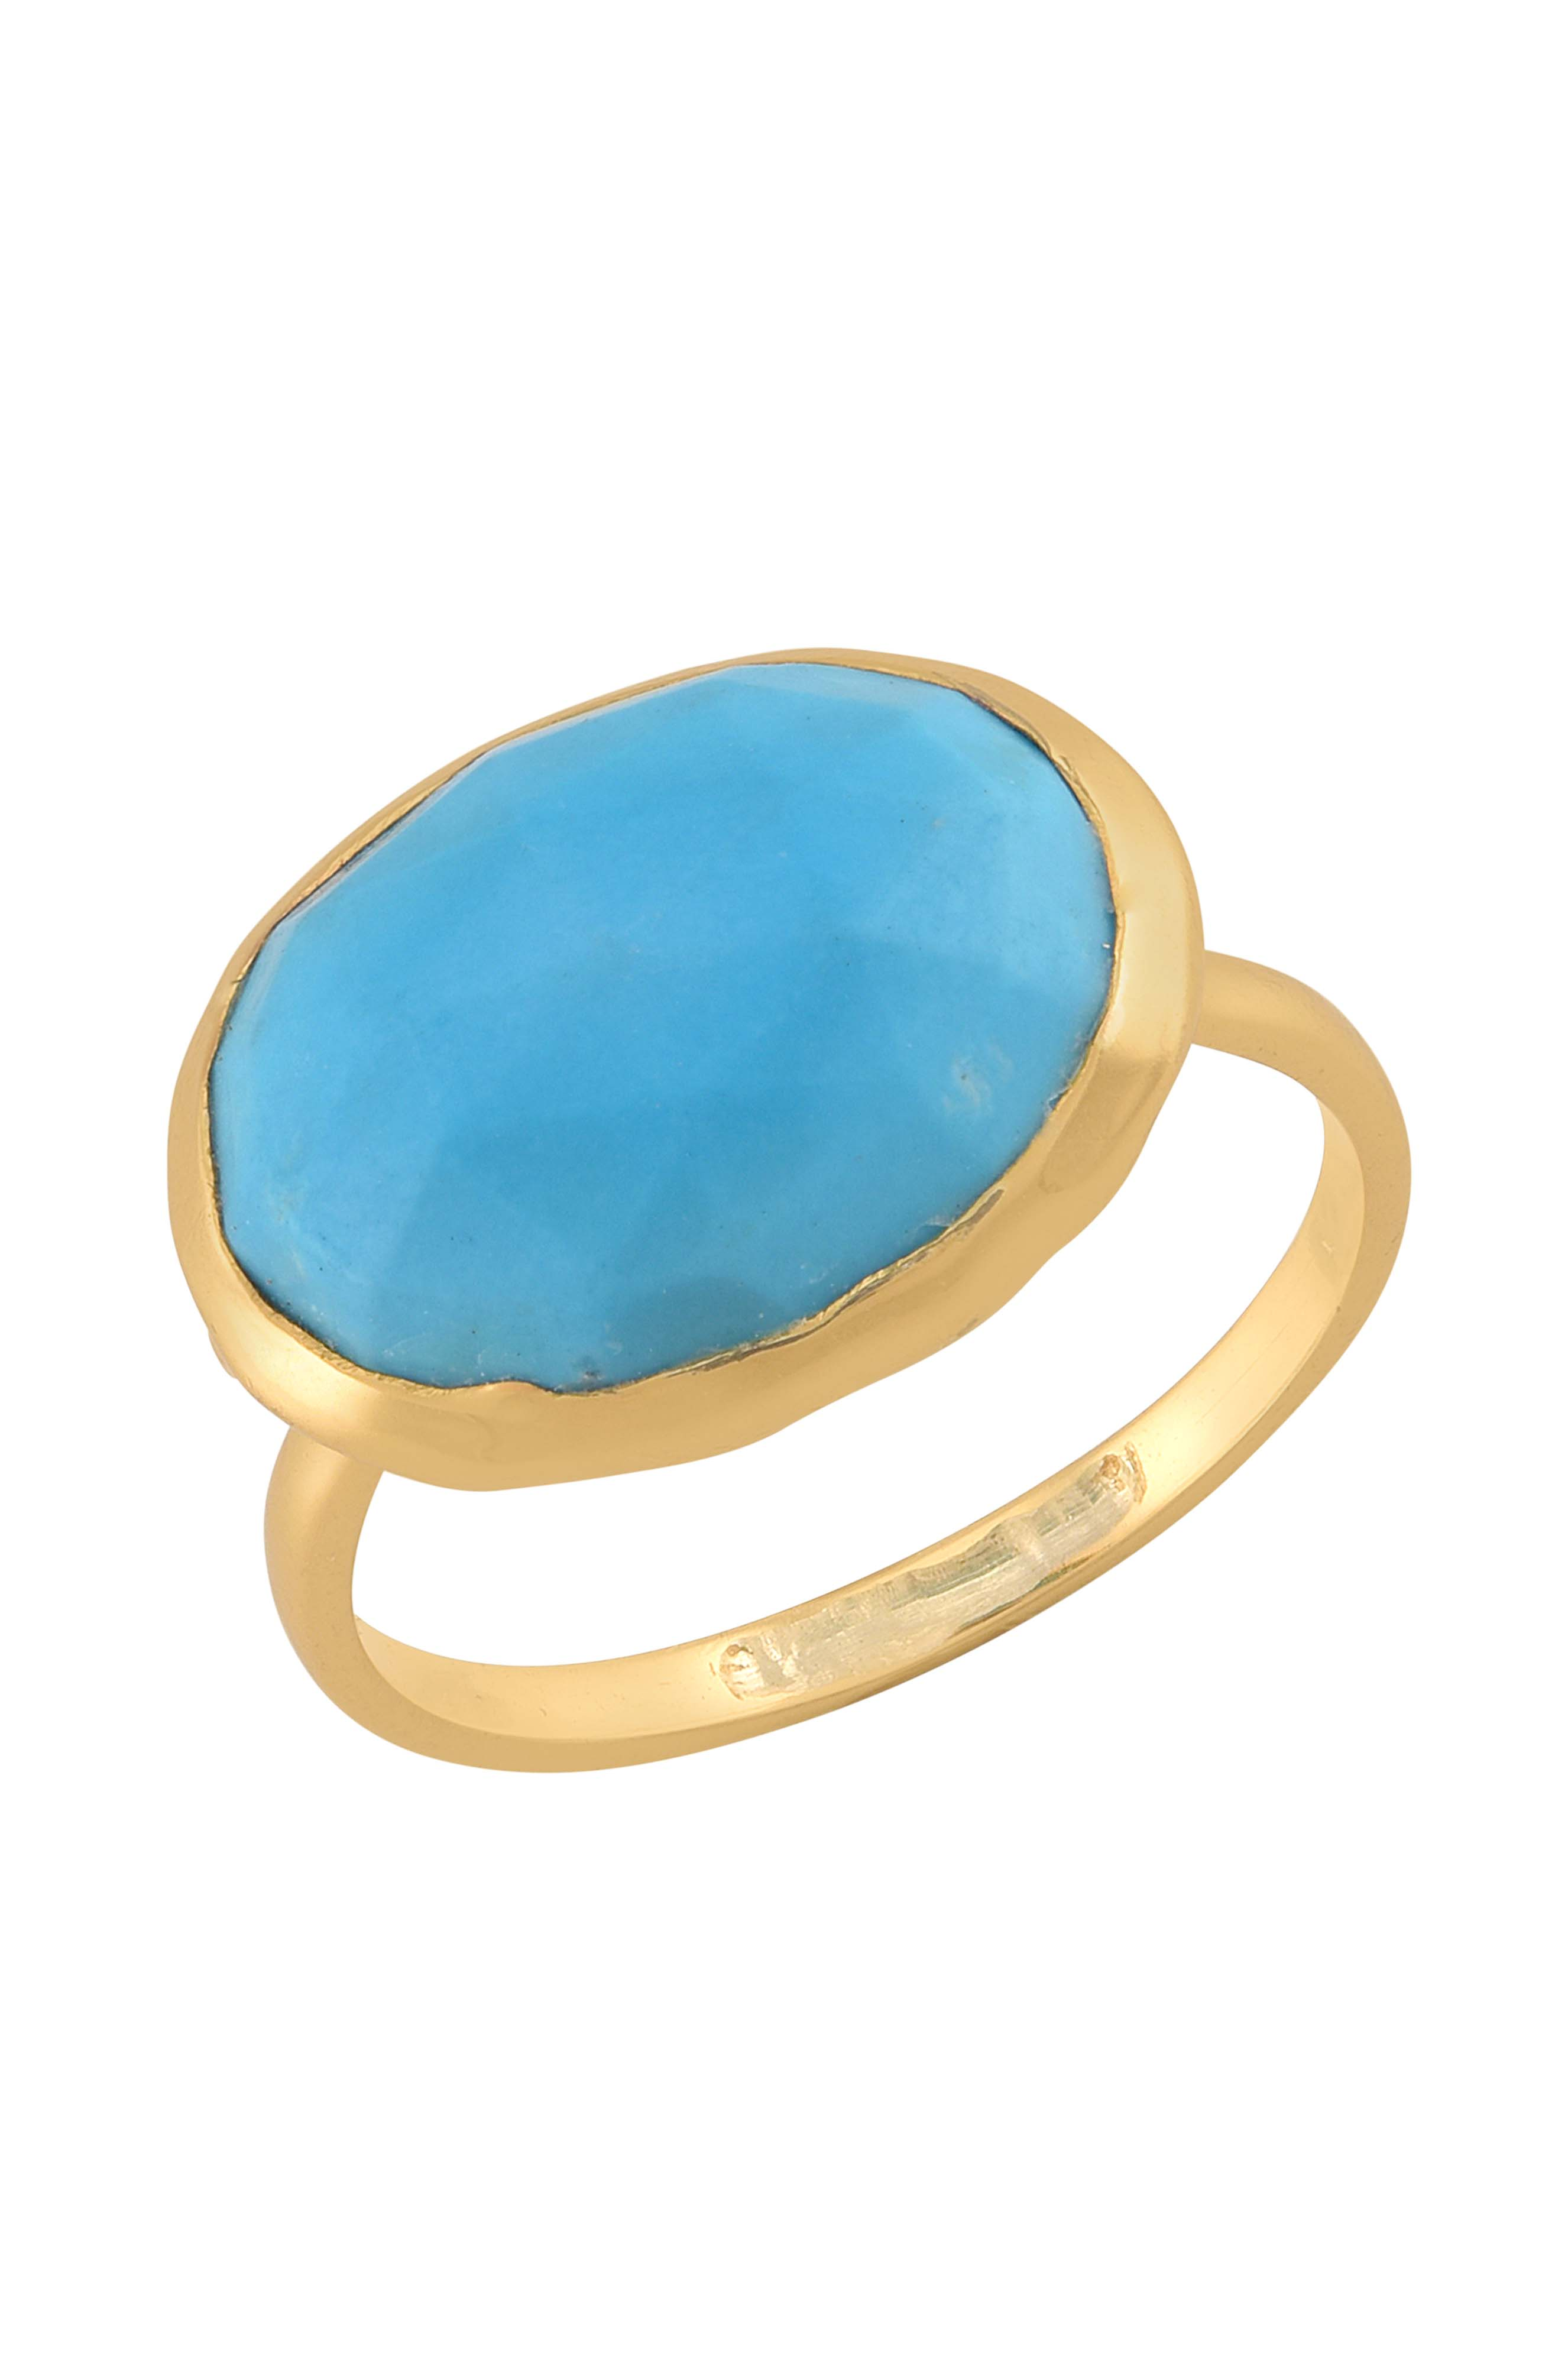 Gold Plated Oval Turquoise Ring